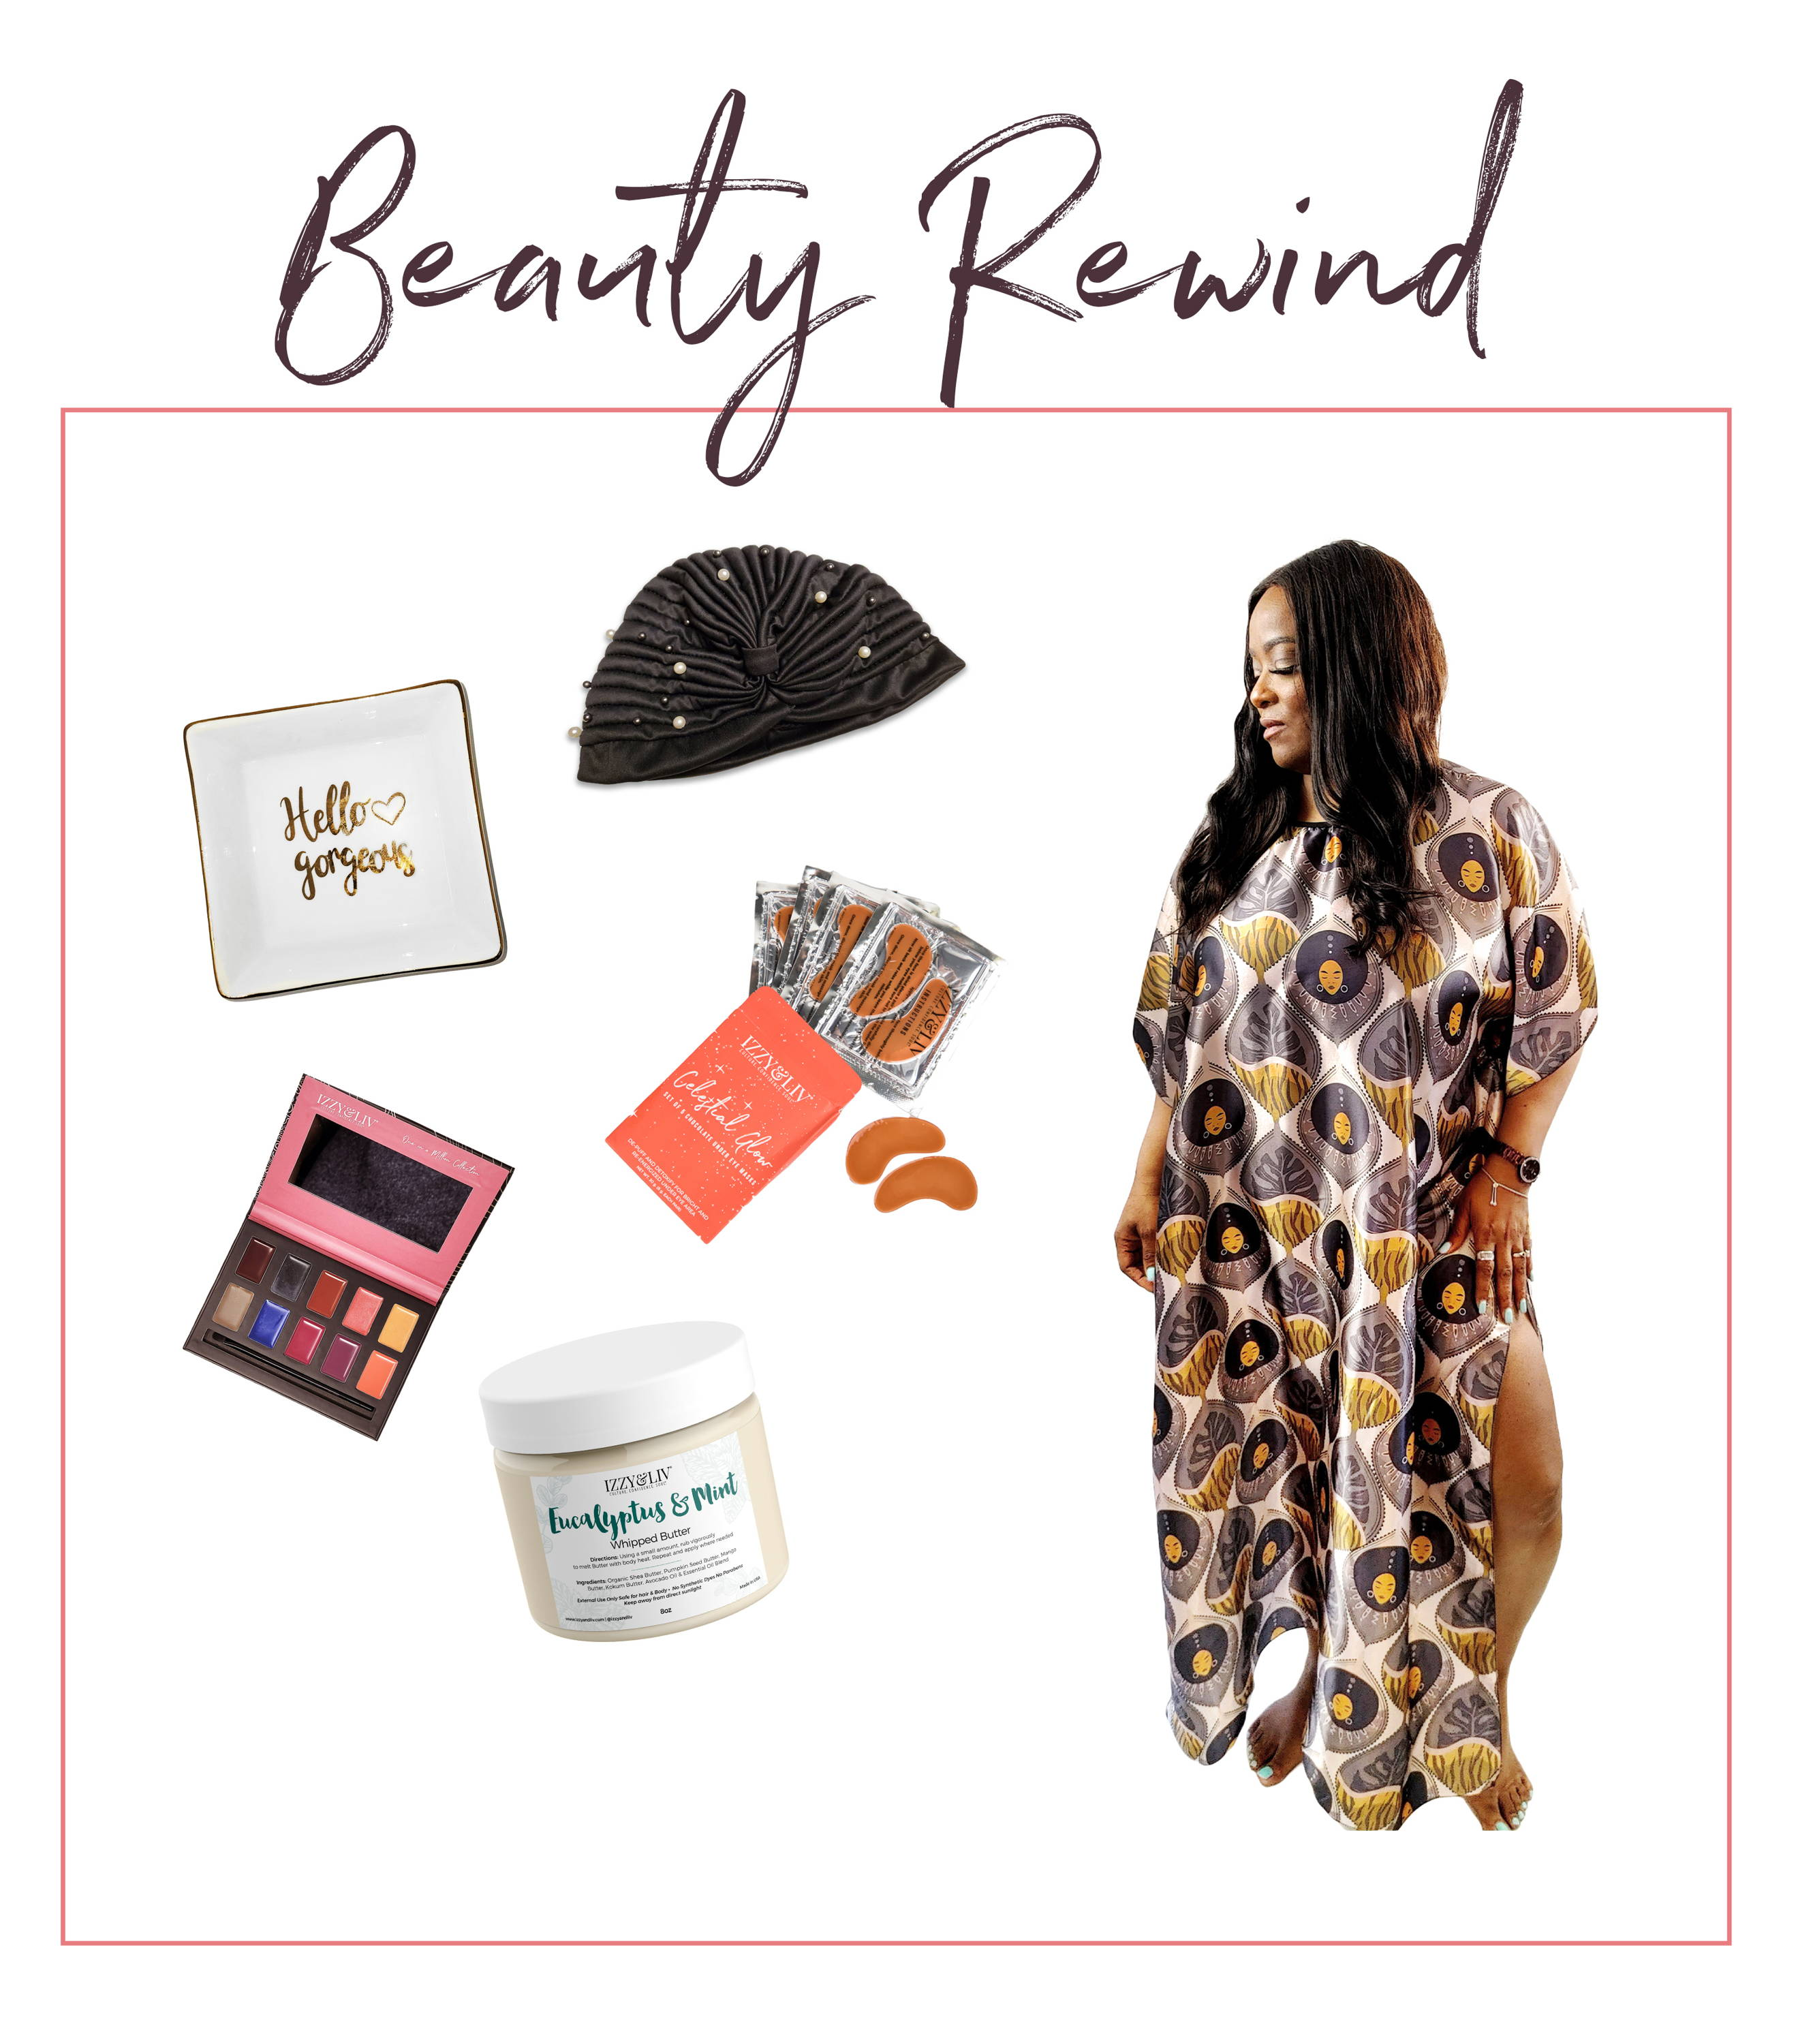 Beauty Rewind Mother's Day Bundle Image